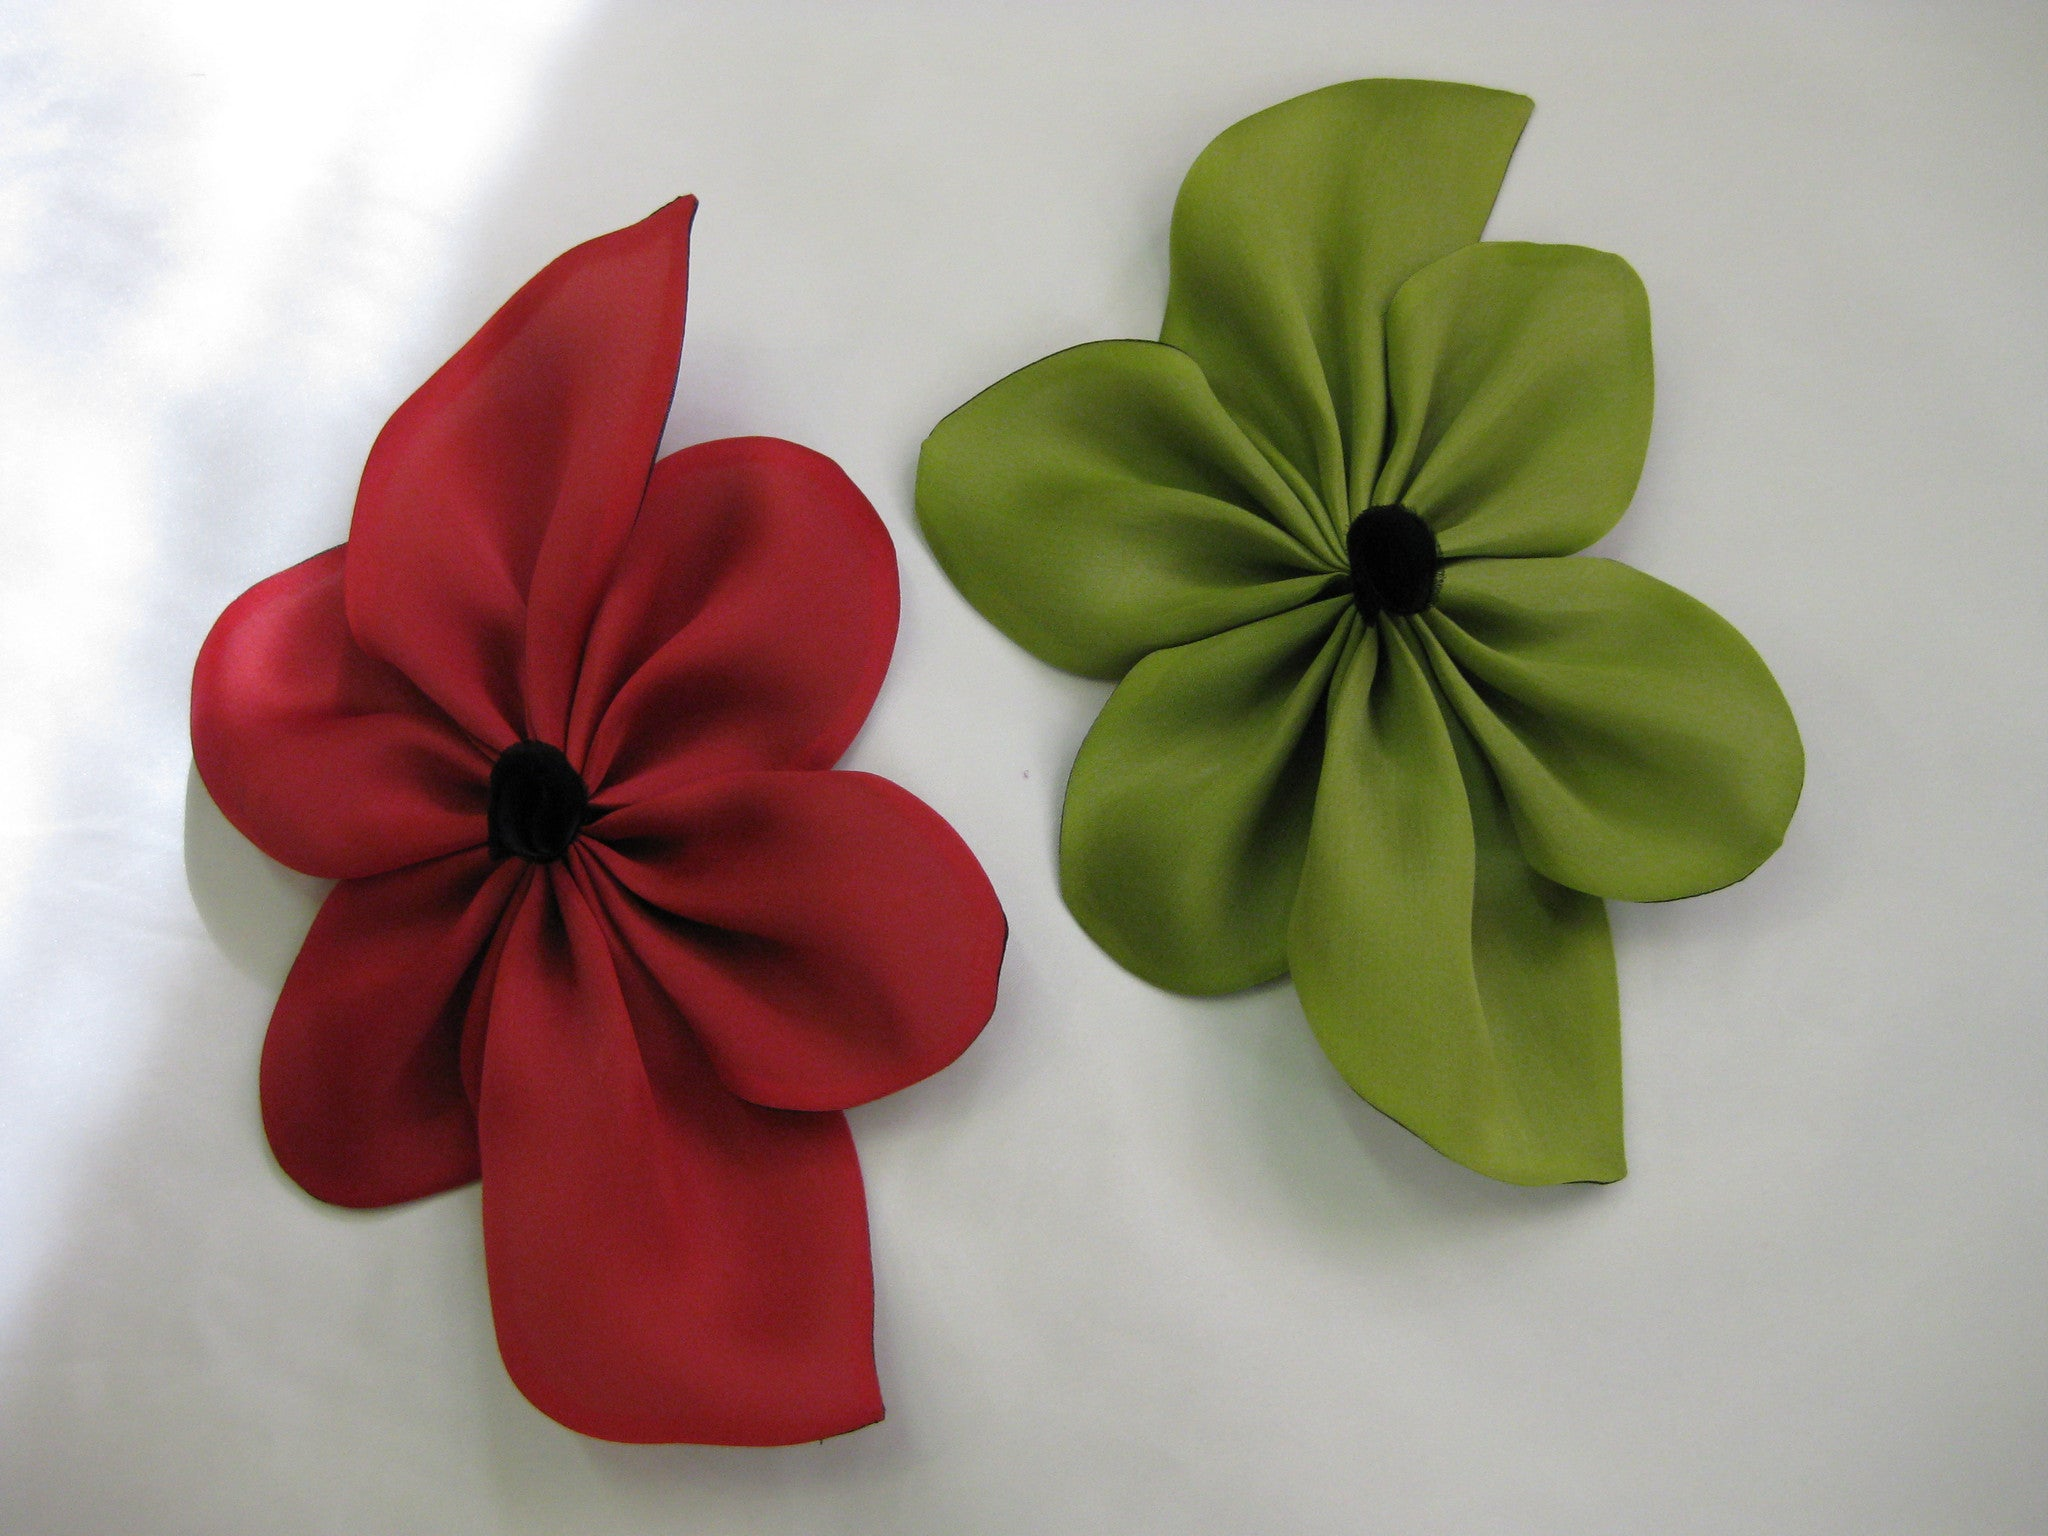 Flower pin minamann red and green silk flower pin with fabric center may be worn on sweaters mightylinksfo